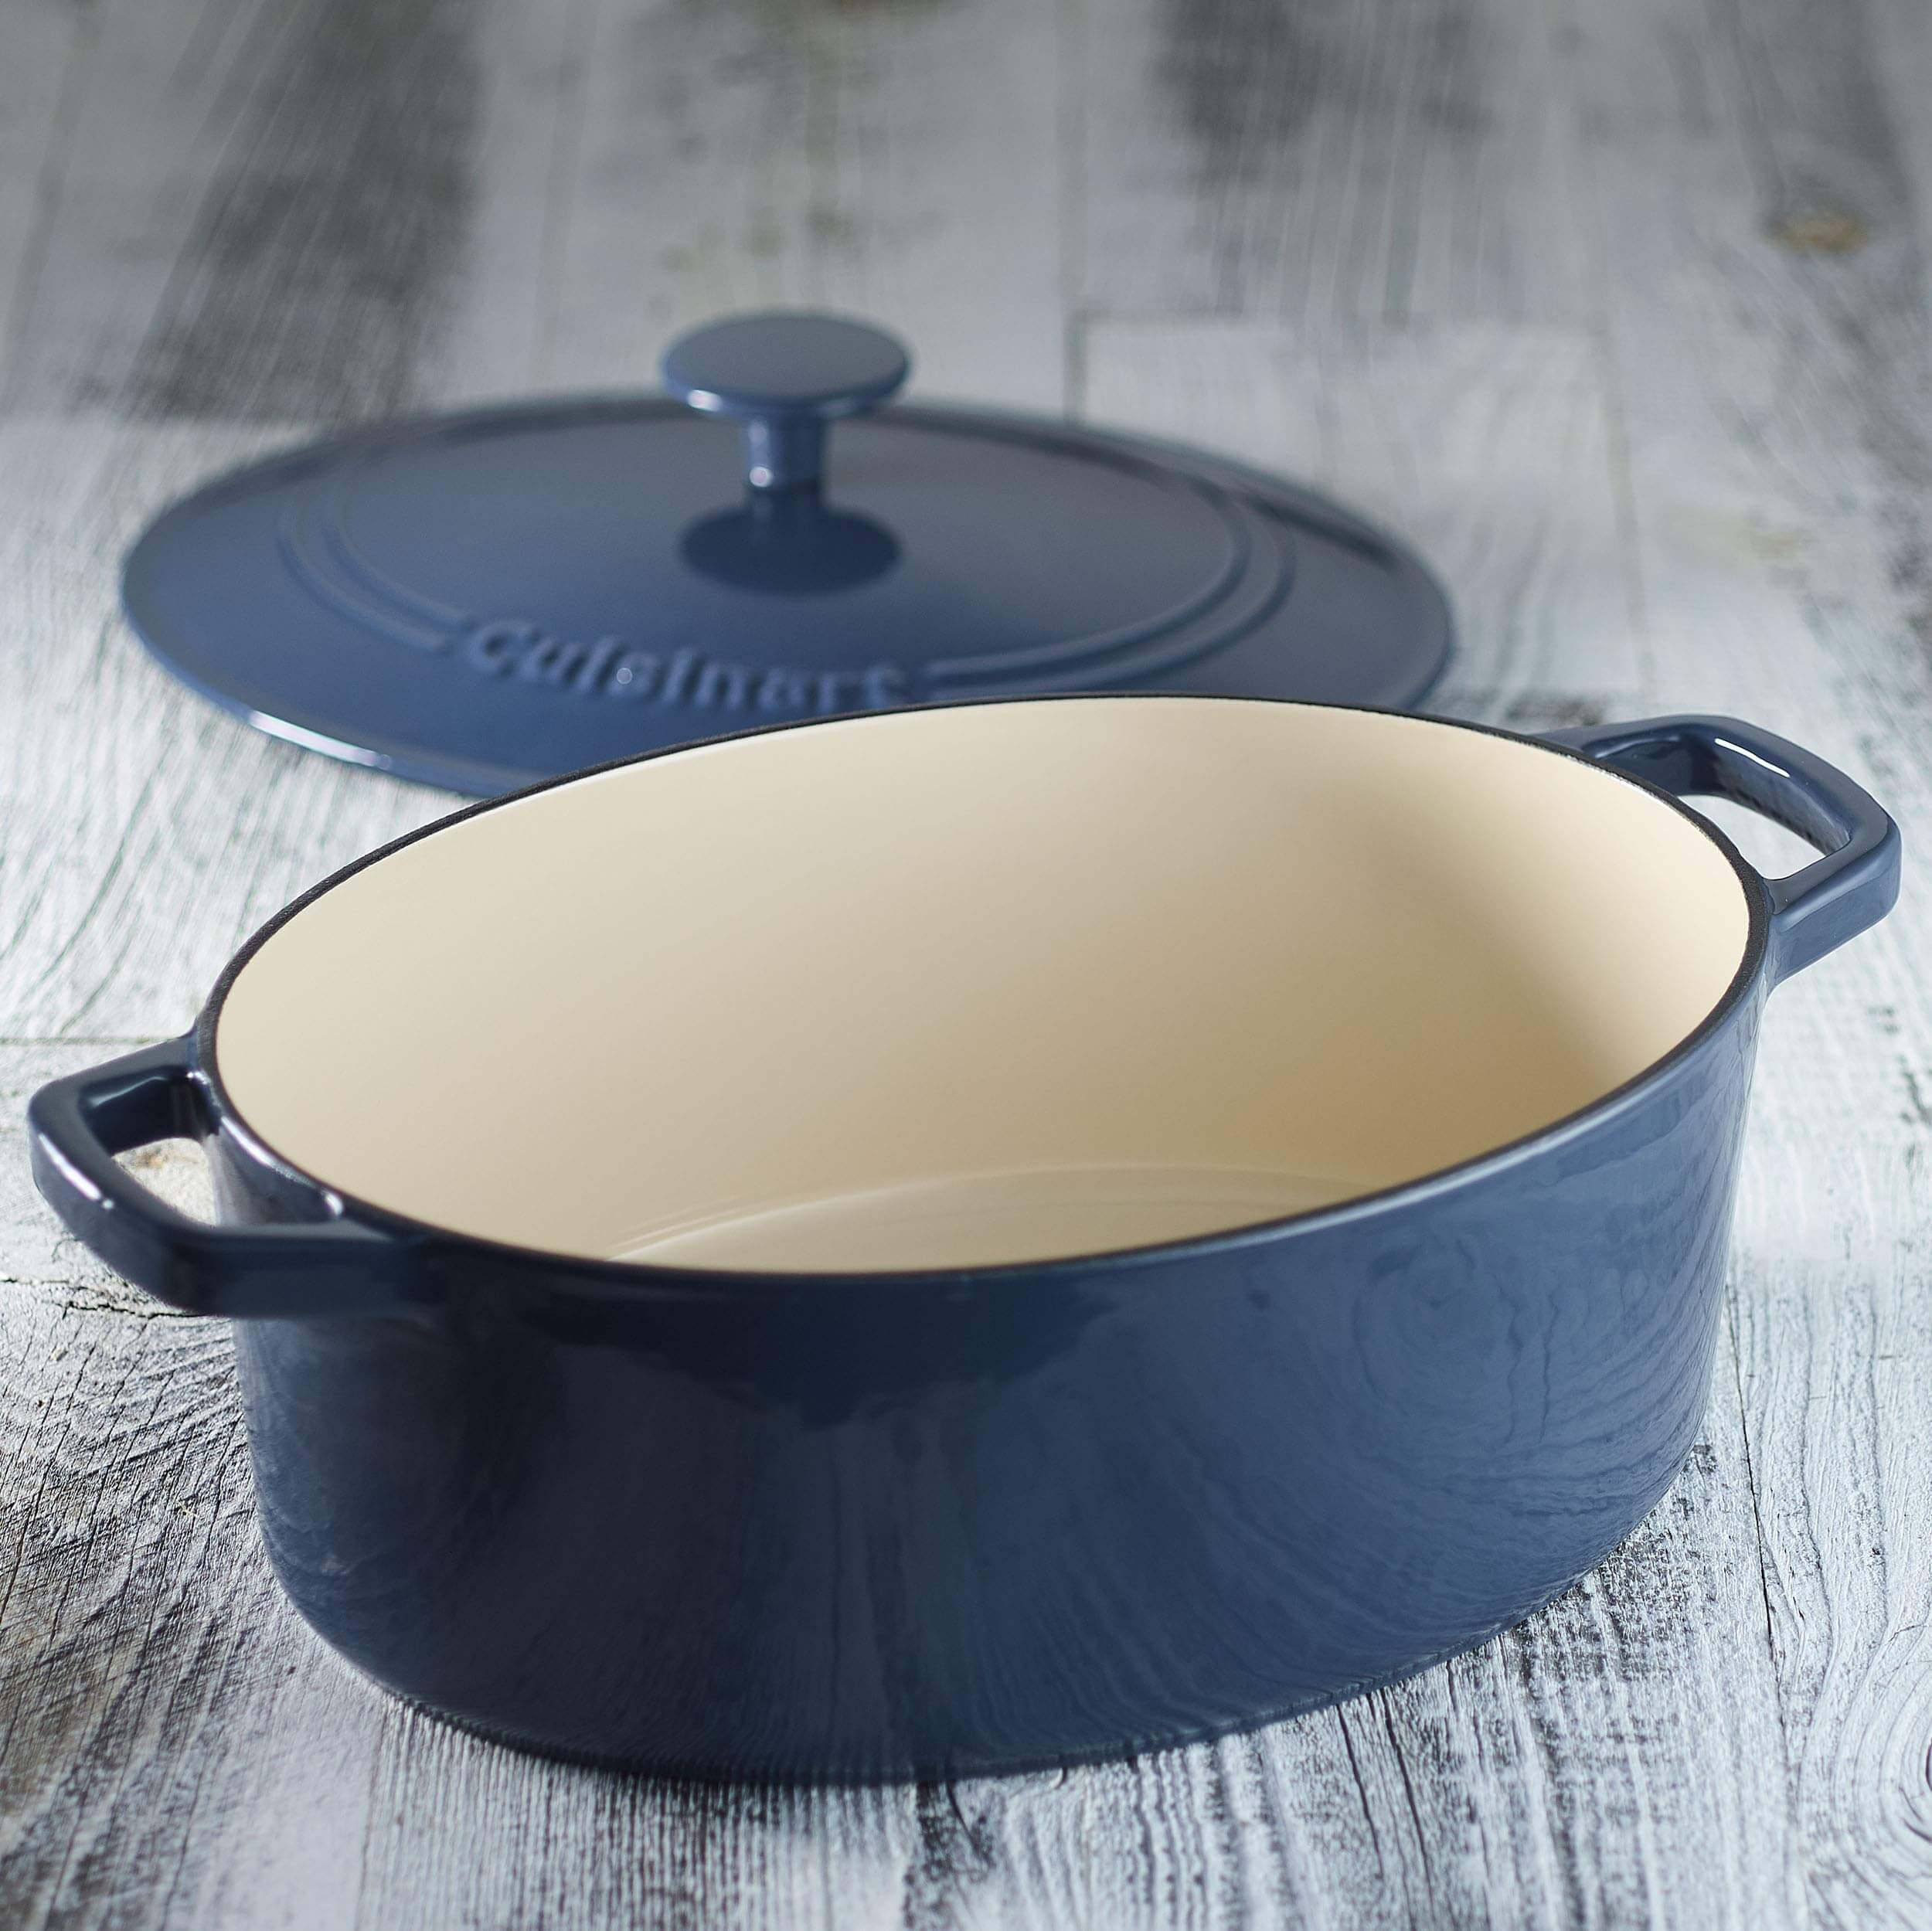 Cuisinart CI755-30BG Oval 5-1/2 Quart Covered best Casserole dish, casserole pan, casserole pot